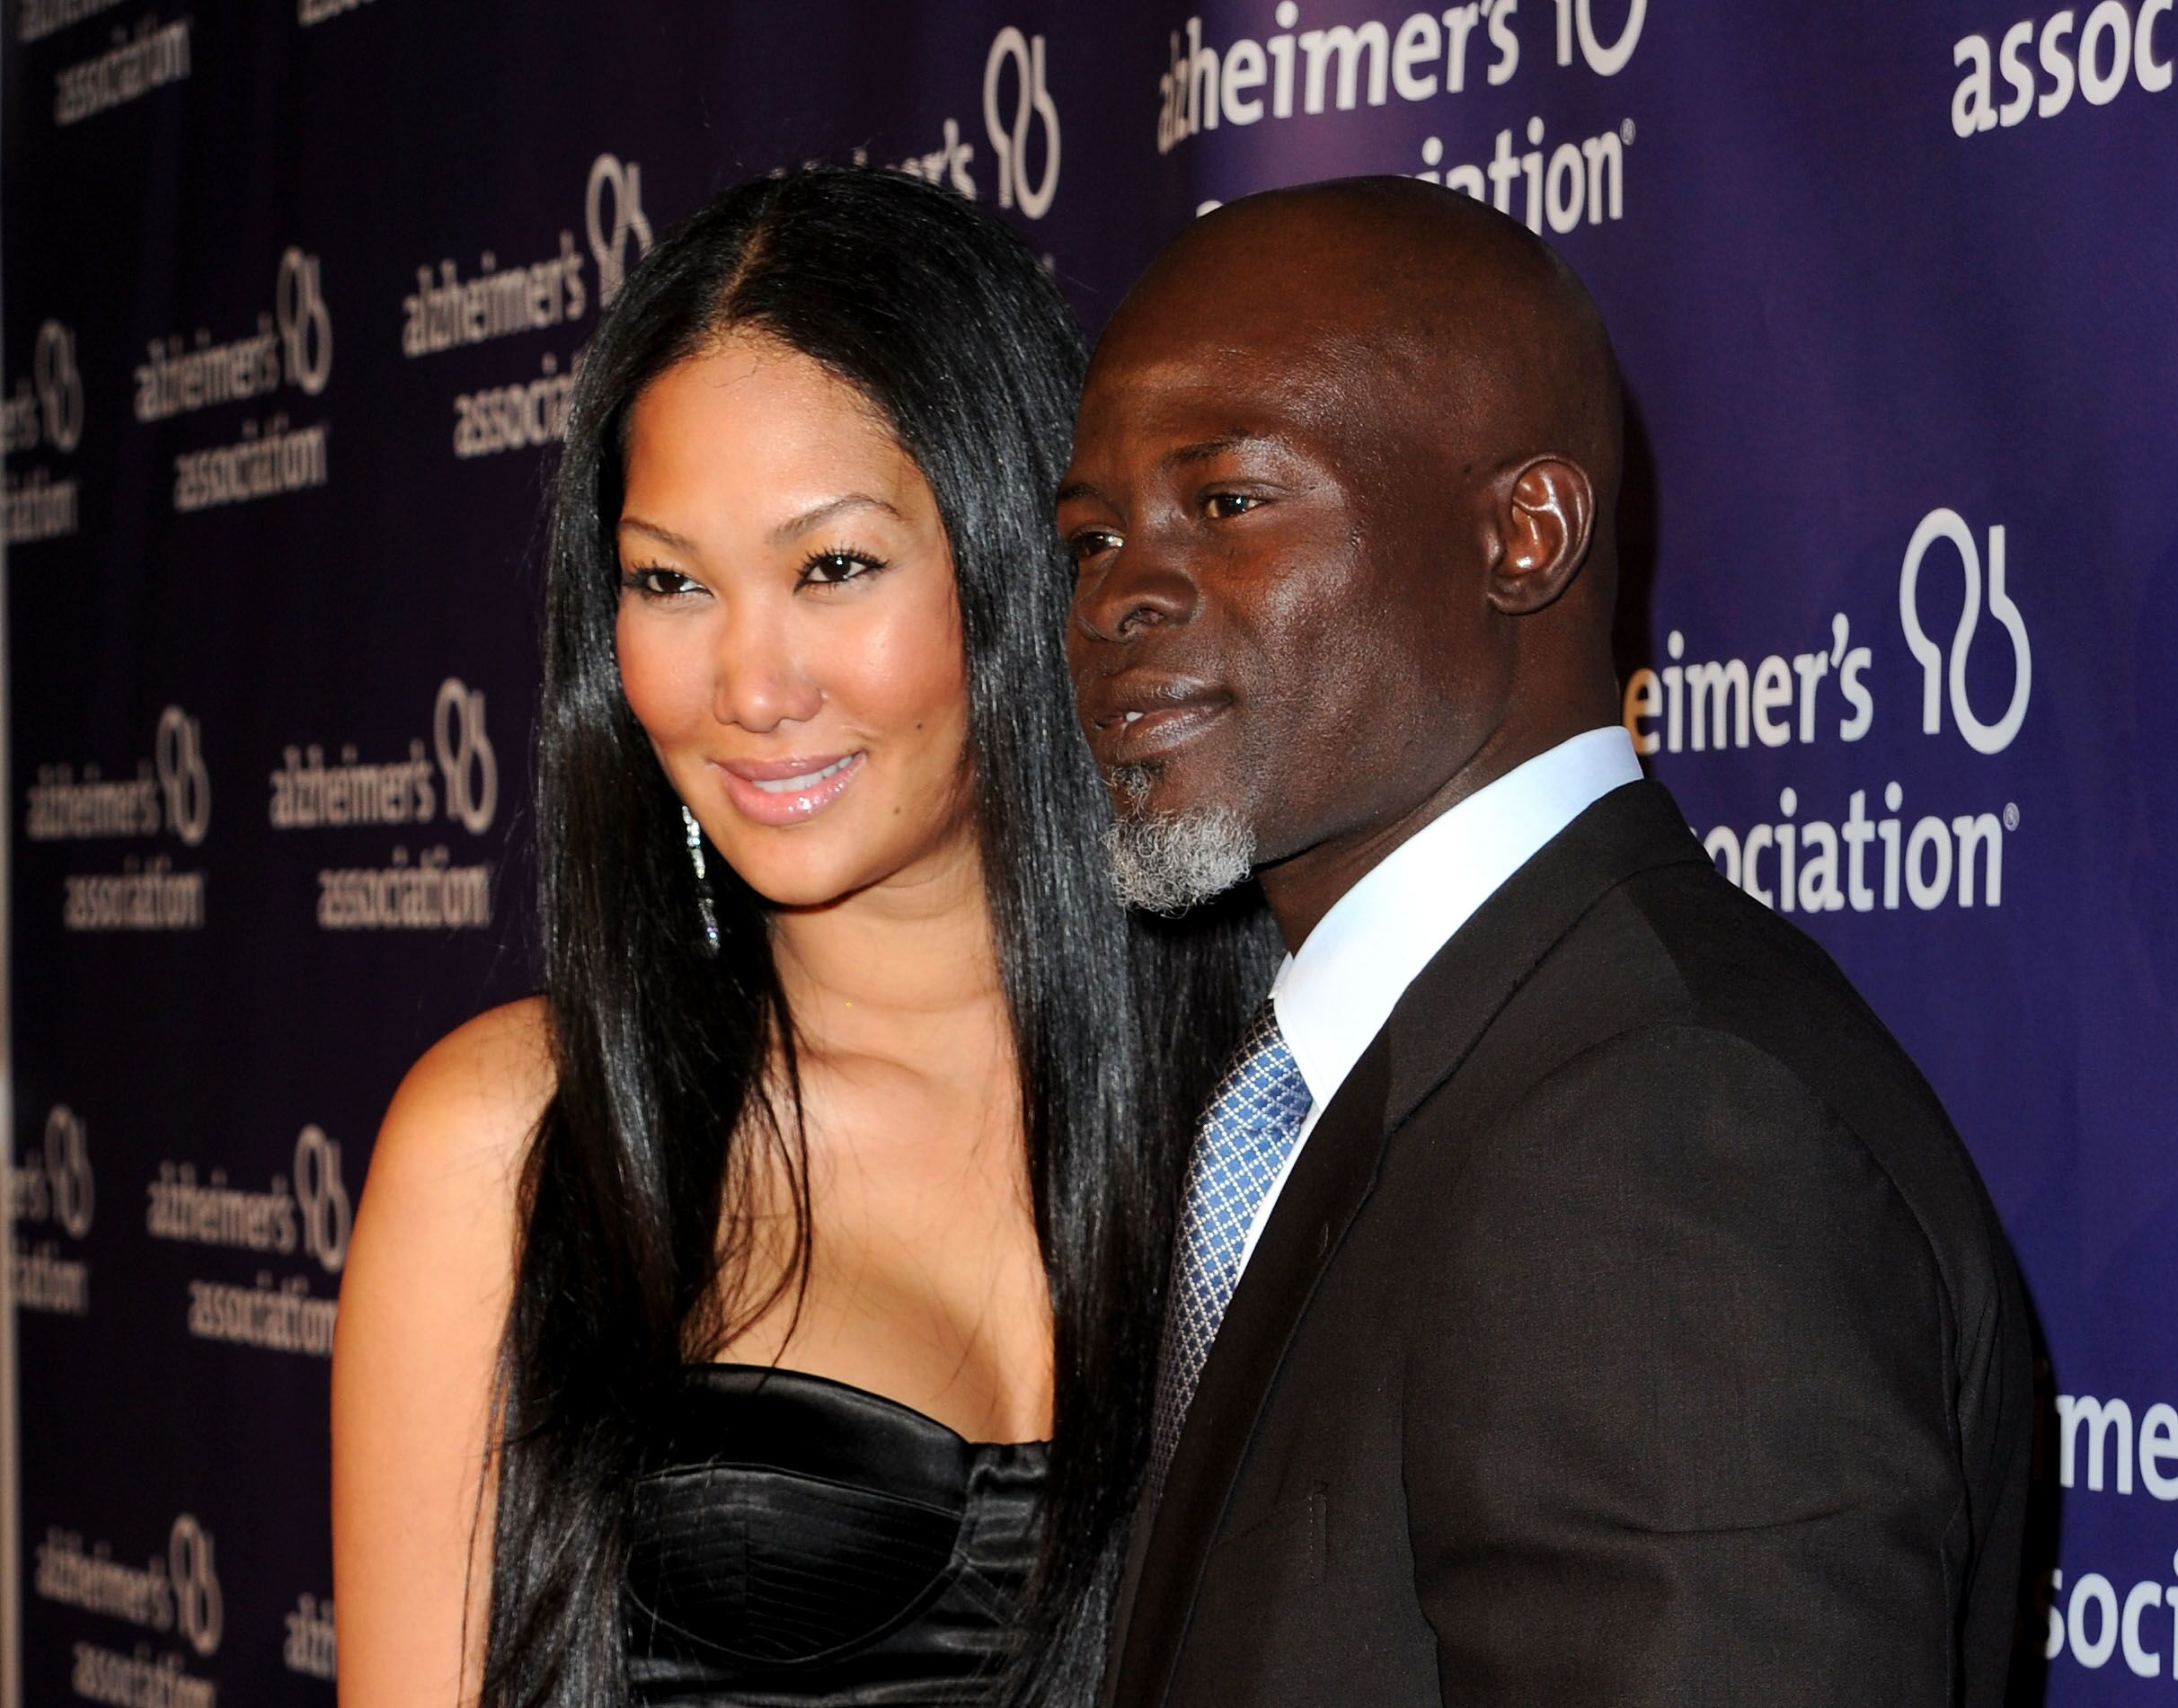 Djimon Hounsouand Kimora Lee Simmons at a Alzheimer's Association event/ Source: Getty Images